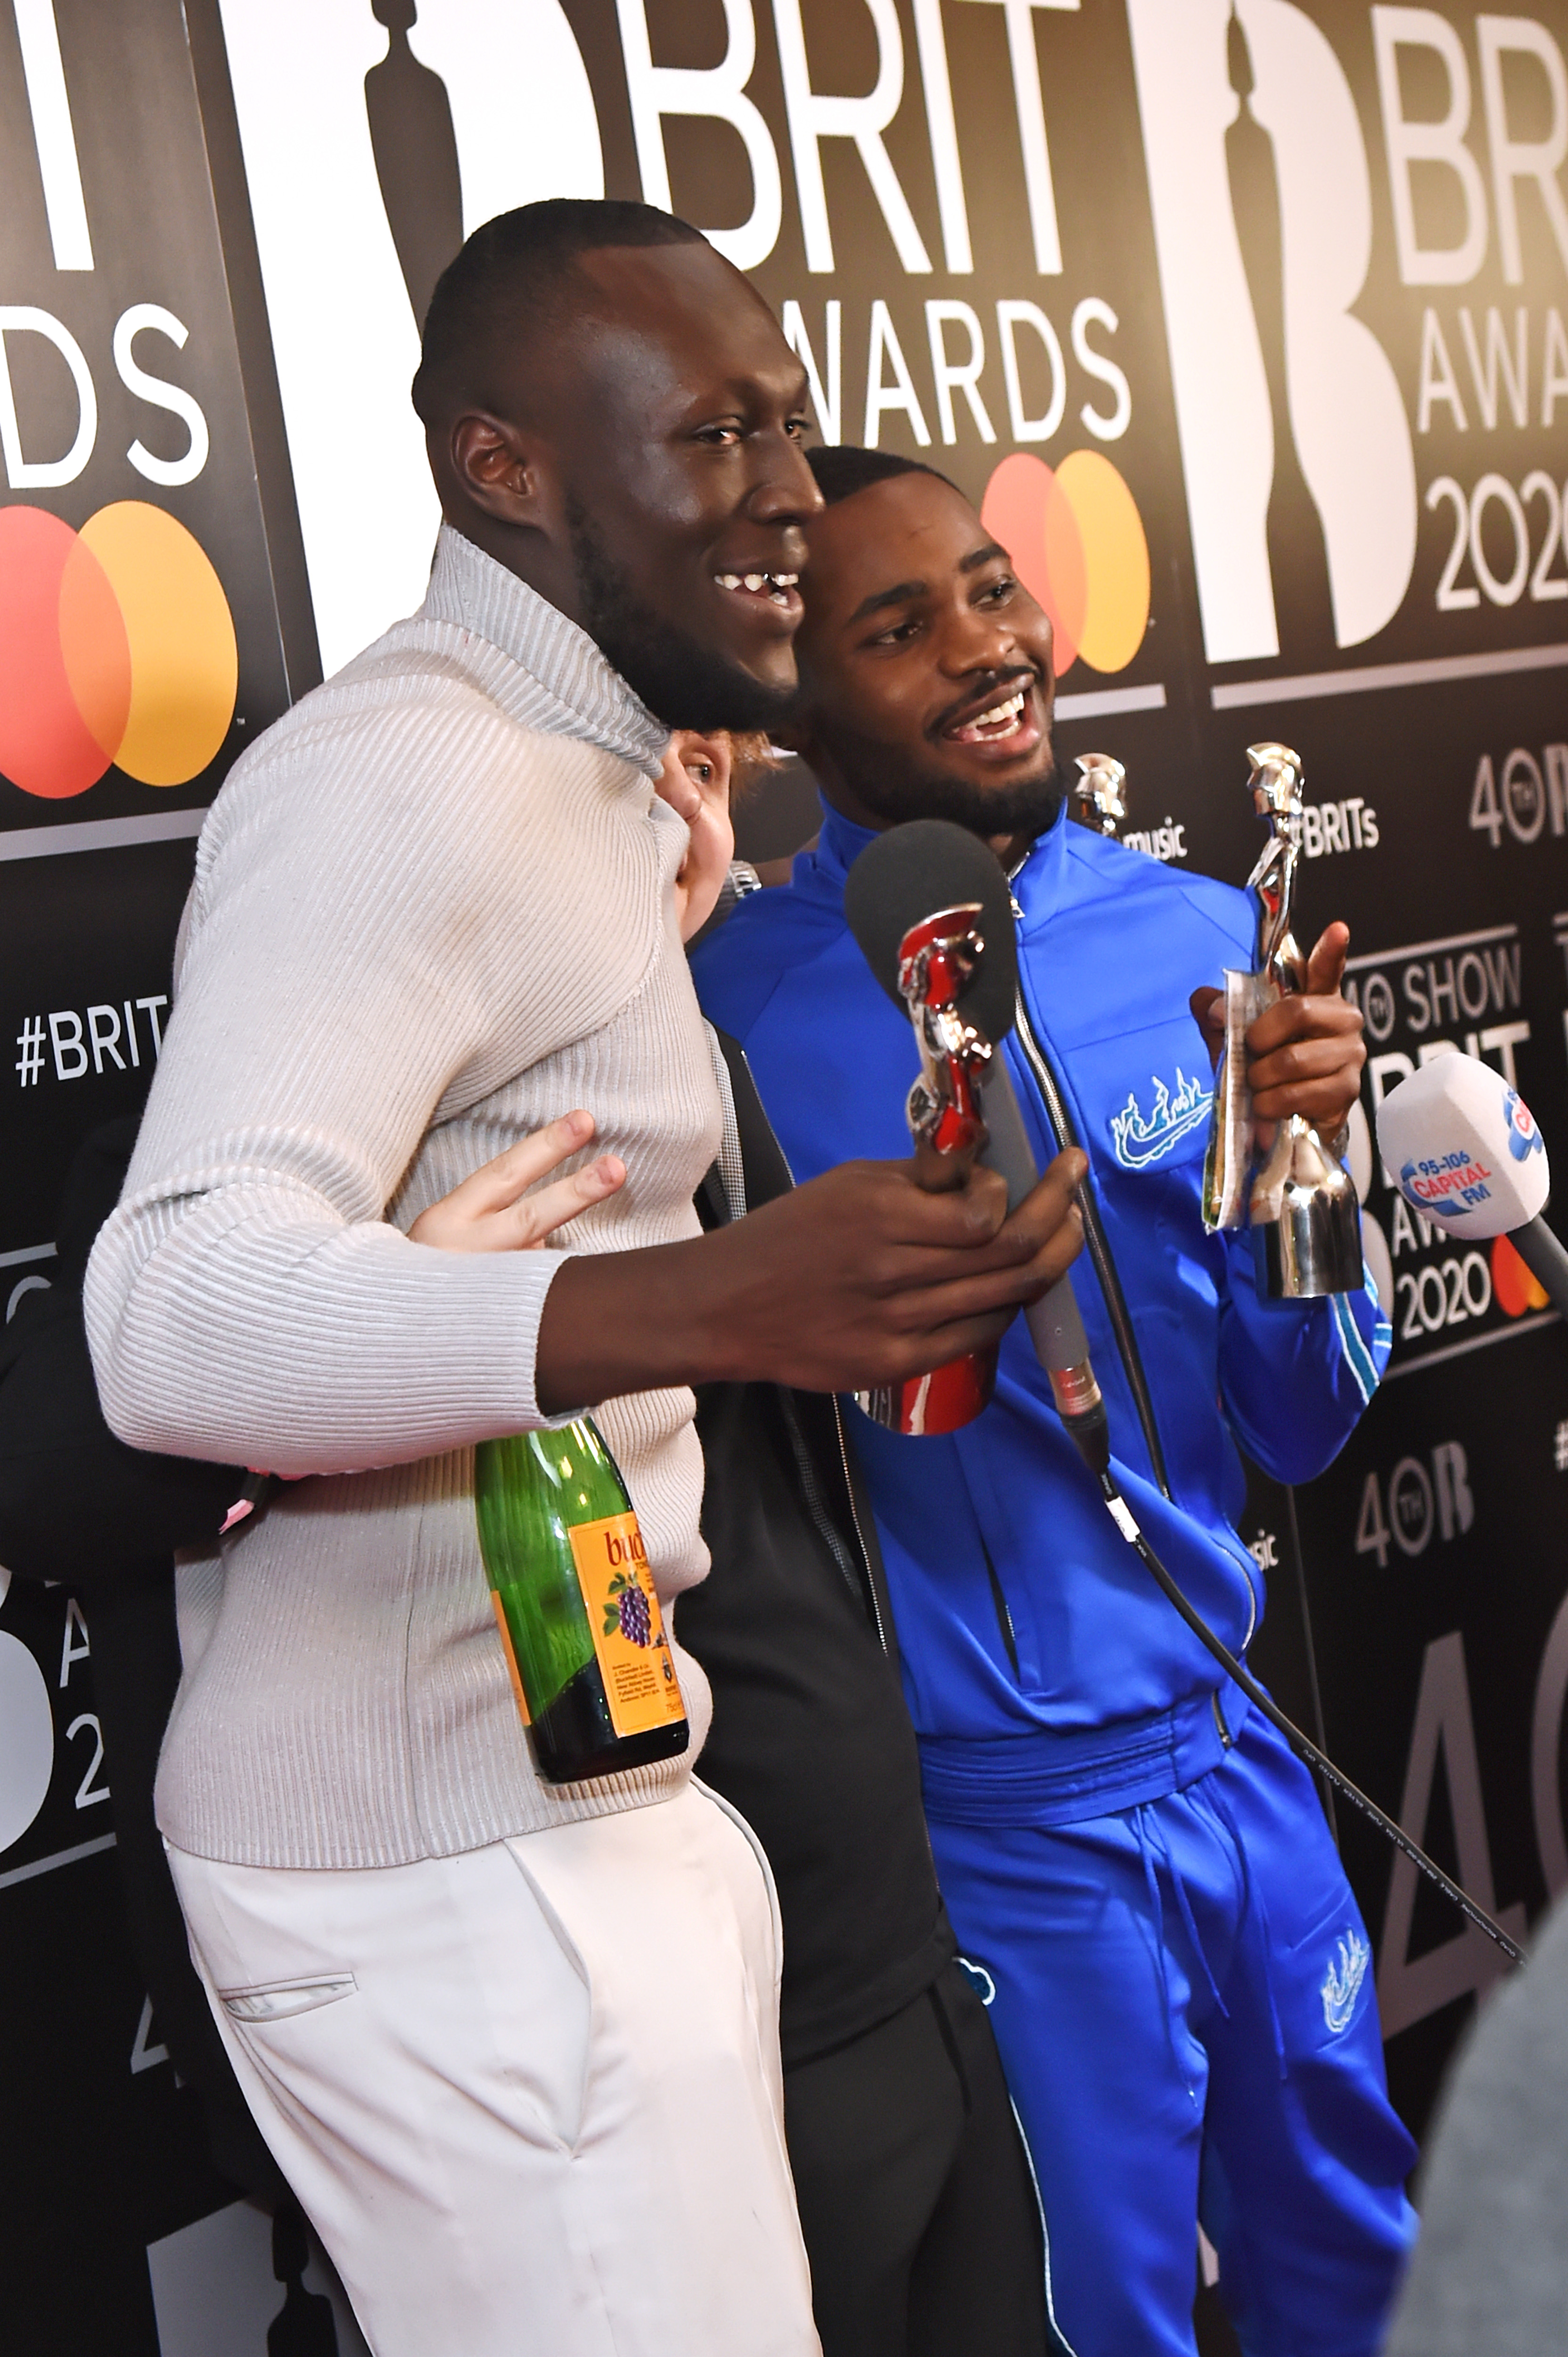 (L to R) Lewis Capaldi, winner of the Best New Artist and Song Of The Year awards, Stormzy, winner of the Male Solo Artist award, and Dave, winner of the Mastercard Album Of The Year award, pose in the winners room at The BRIT Awards 2020 at The O2 Arena on February 18, 2020 in London, England.  (Photo by David M. Benett/Dave Benett/Getty Images)